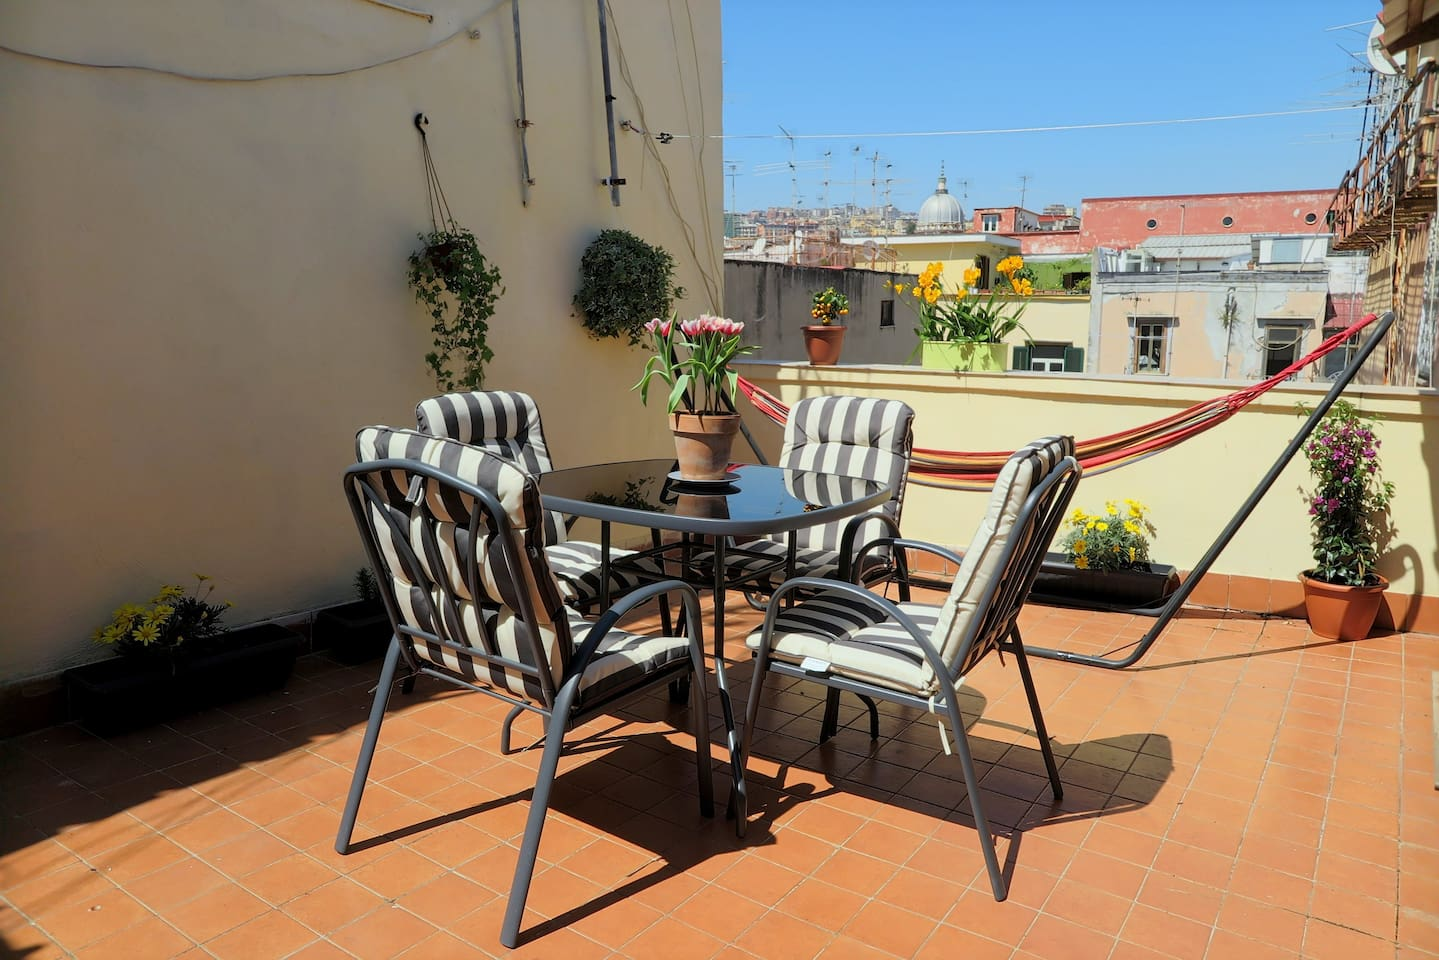 The sunny terrace where you can have breakfast and enjoy the siesta after an intense sightseeing day...